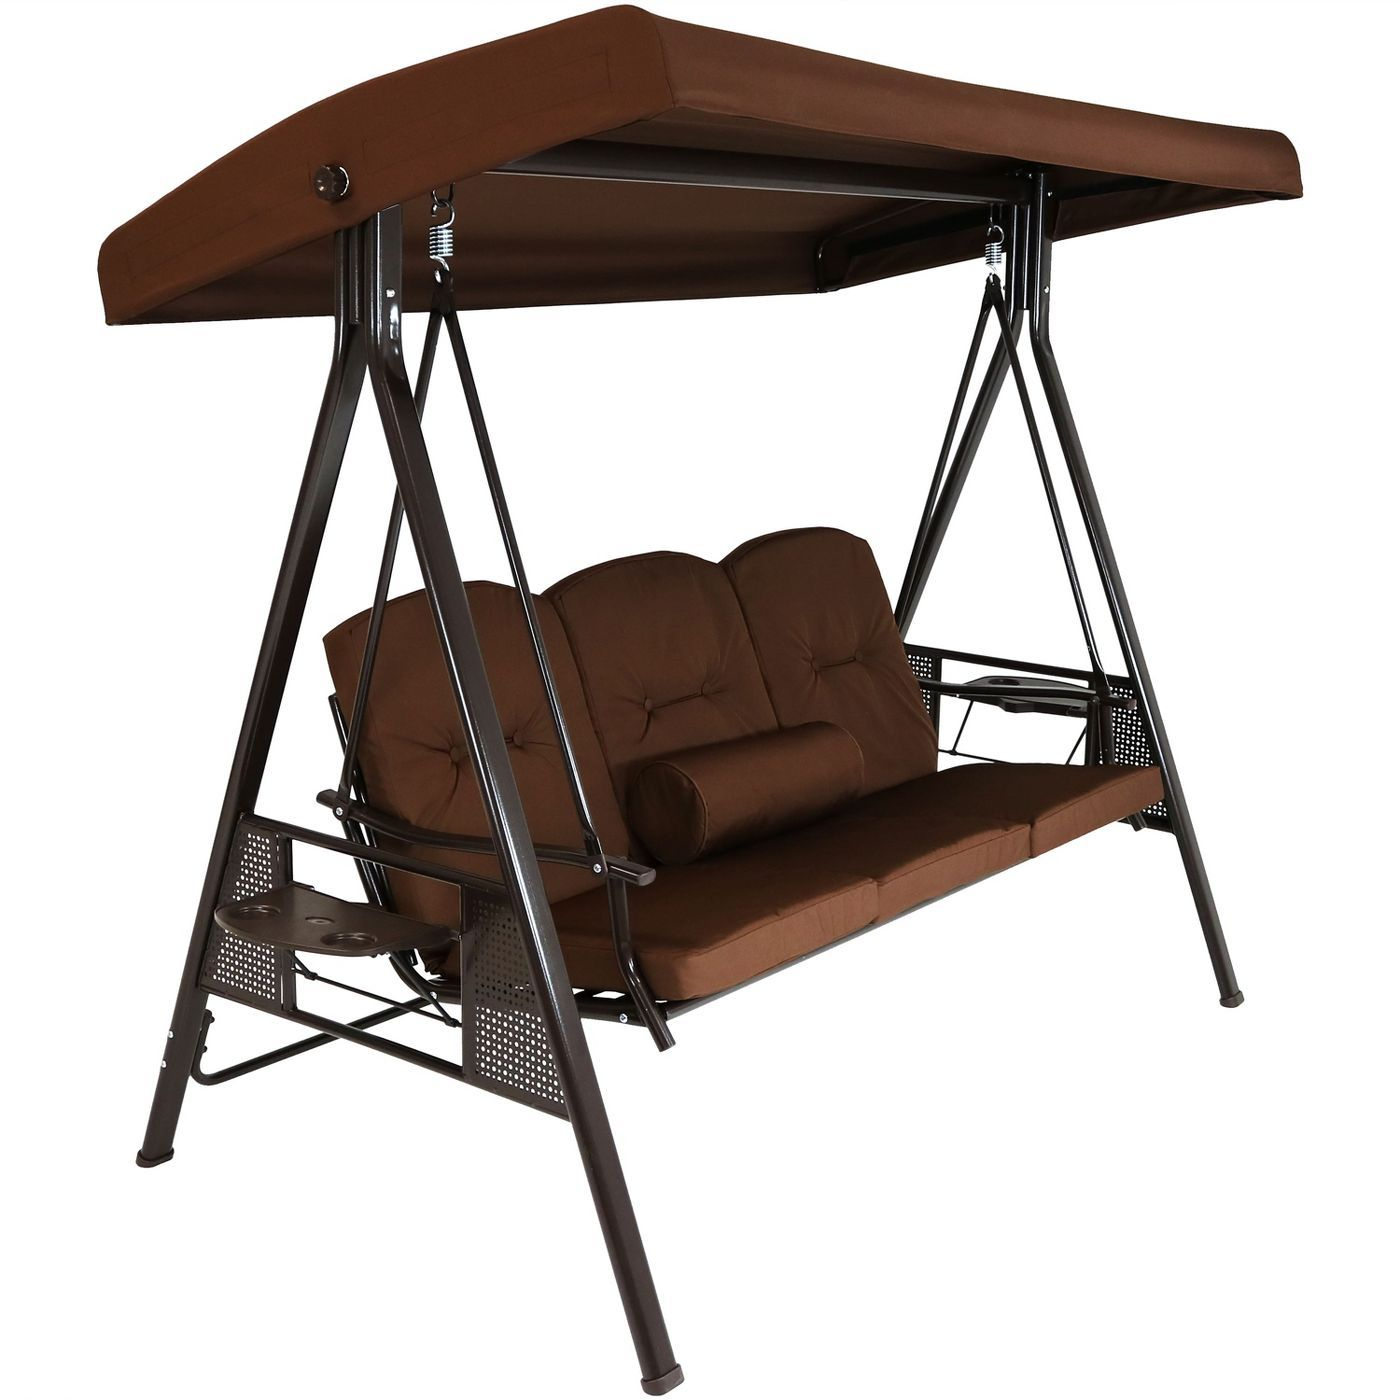 Sunnydaze Decor 3 Person Steel Frame Canopy Patio Swing With In Outdoor Swing Glider Chairs With Powder Coated Steel Frame (View 24 of 25)